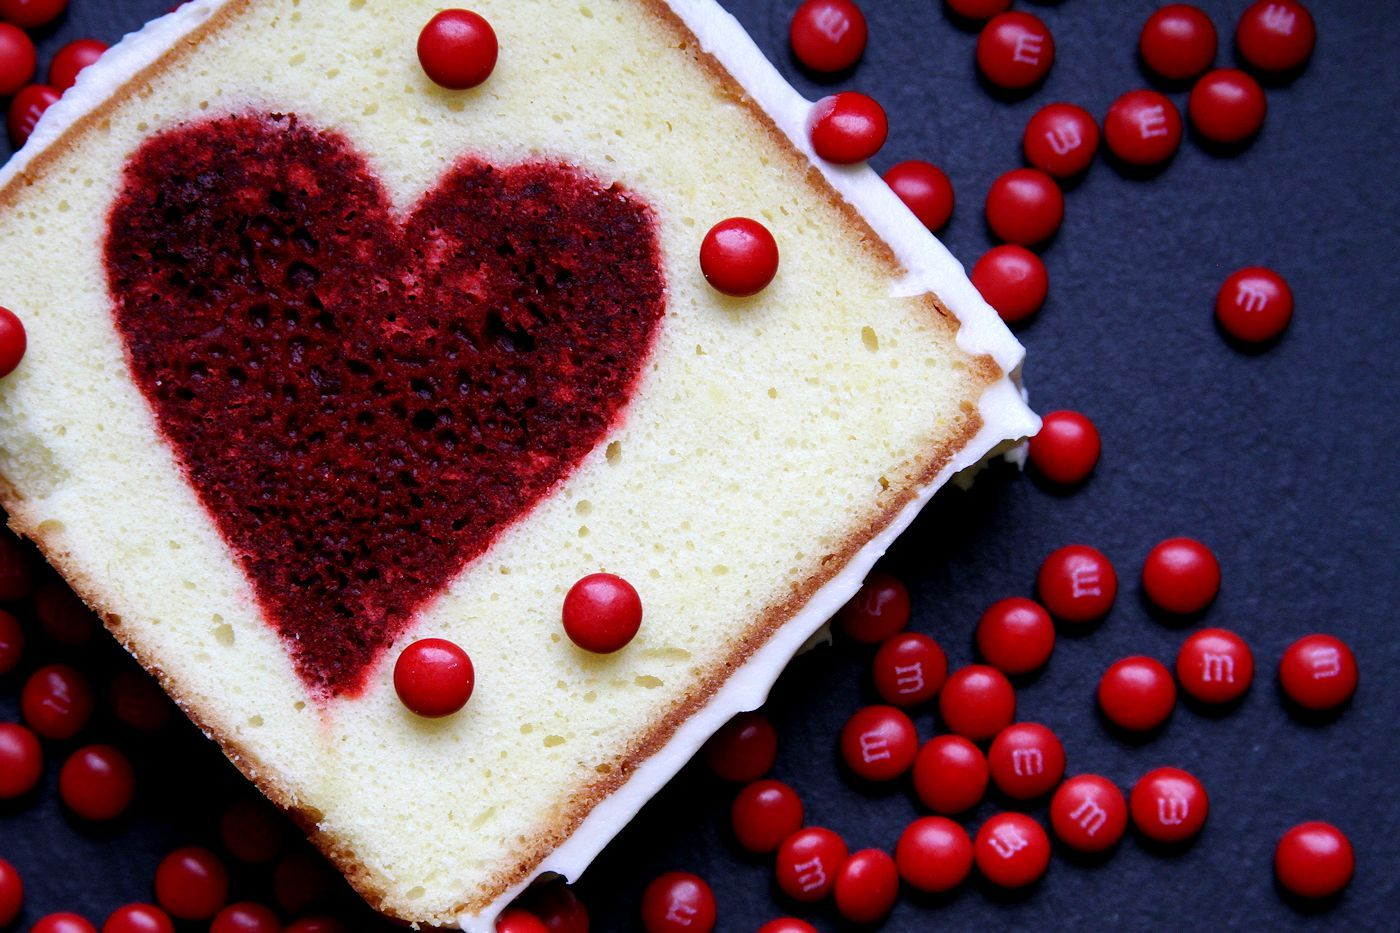 HEART INSIDE VALENTINE'S DAY CAKE #valentinesday #dessert #red #heart